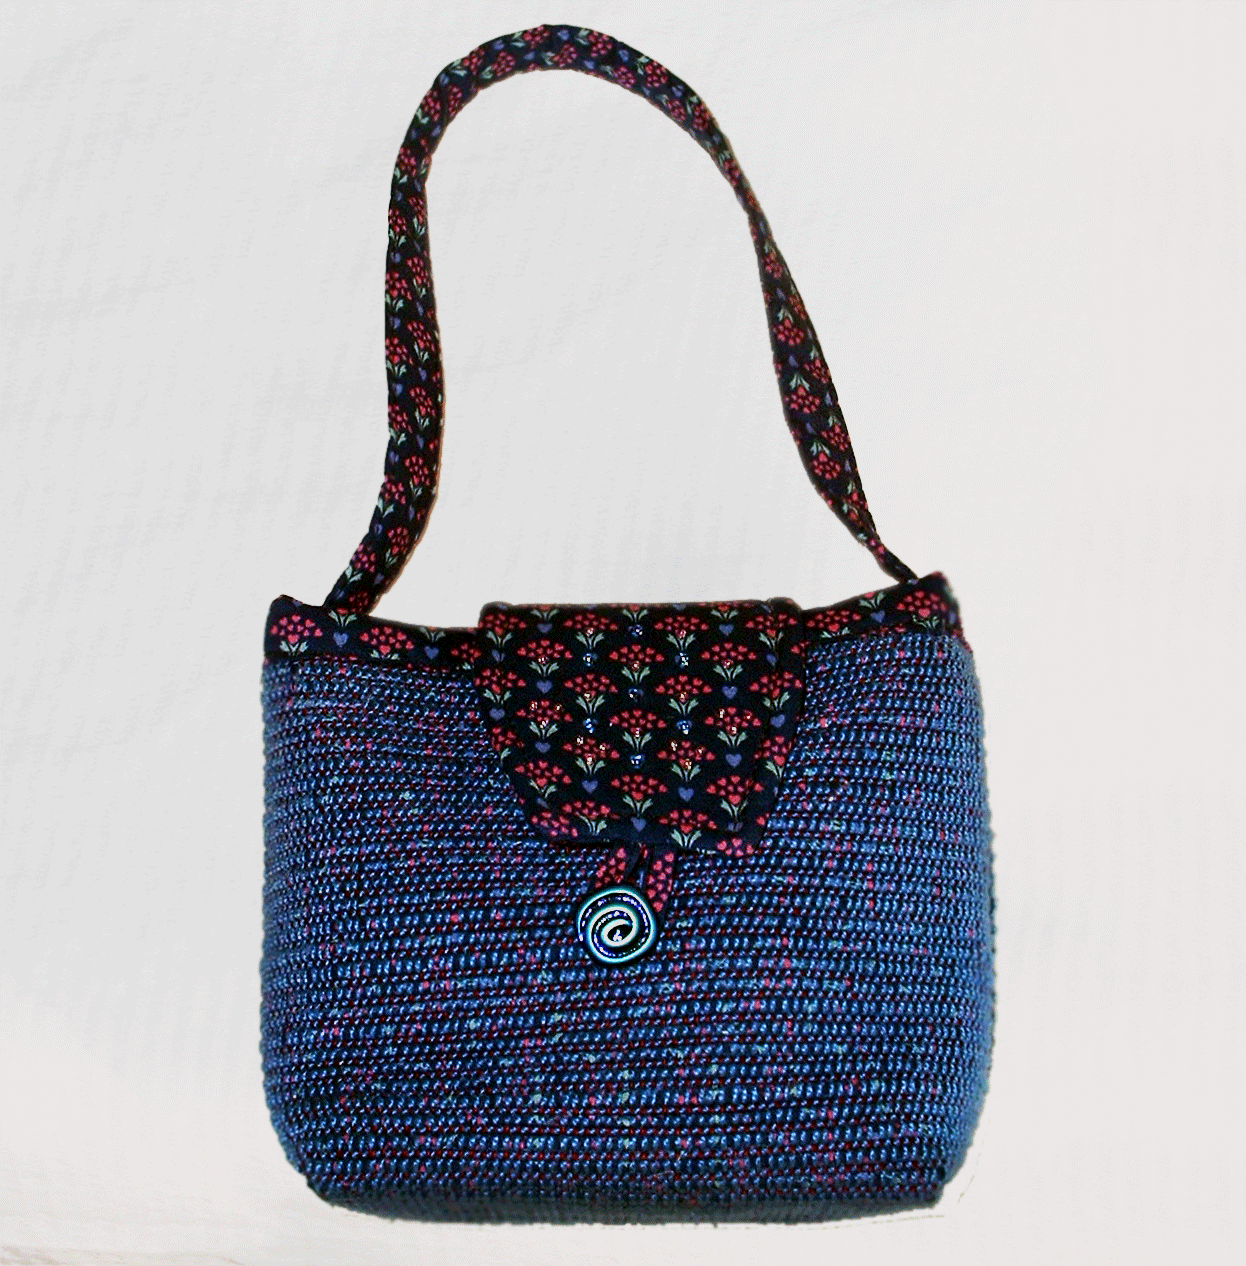 16_Handwoven-&-Sewn-Bag-5-2004-(cotton,-6x3x8-in)b.png